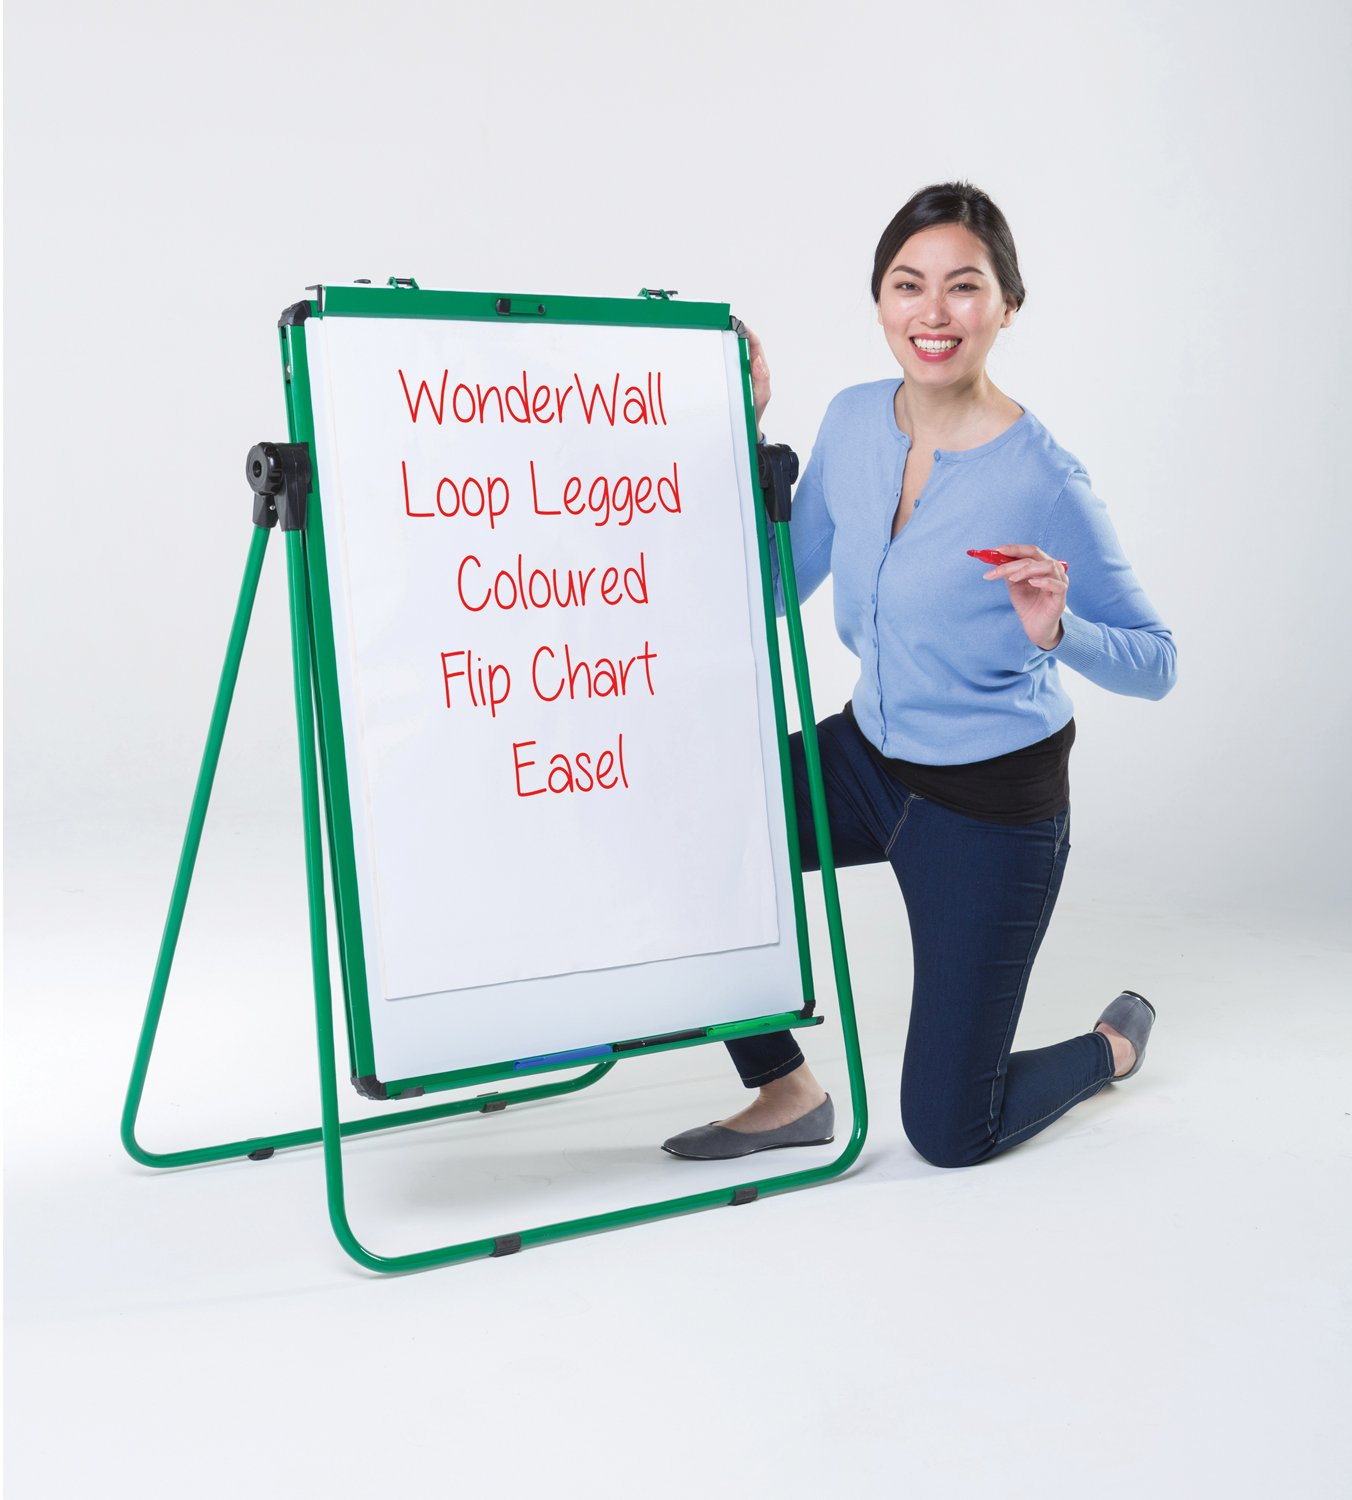 Wonderwall Double-Sided MagneticTilting Flipchart Easel - Black Without Carry Bag Black